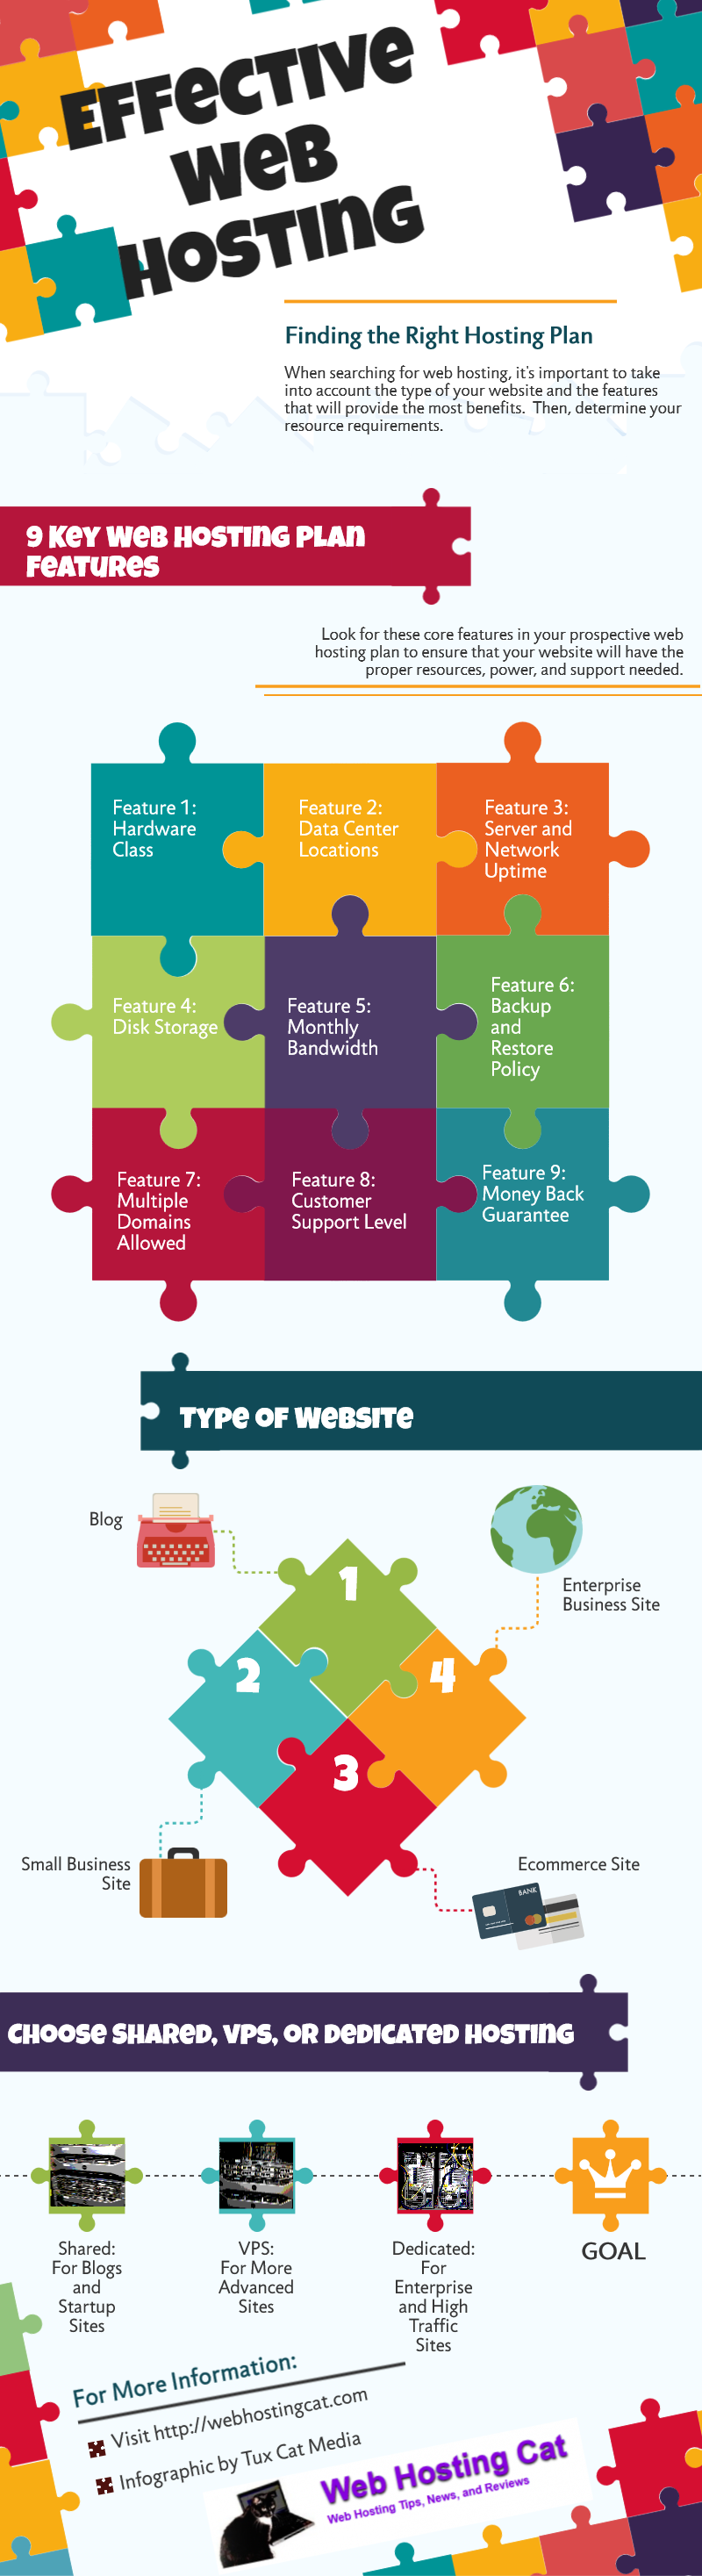 Effective Elements Of A Web Hosting Plan